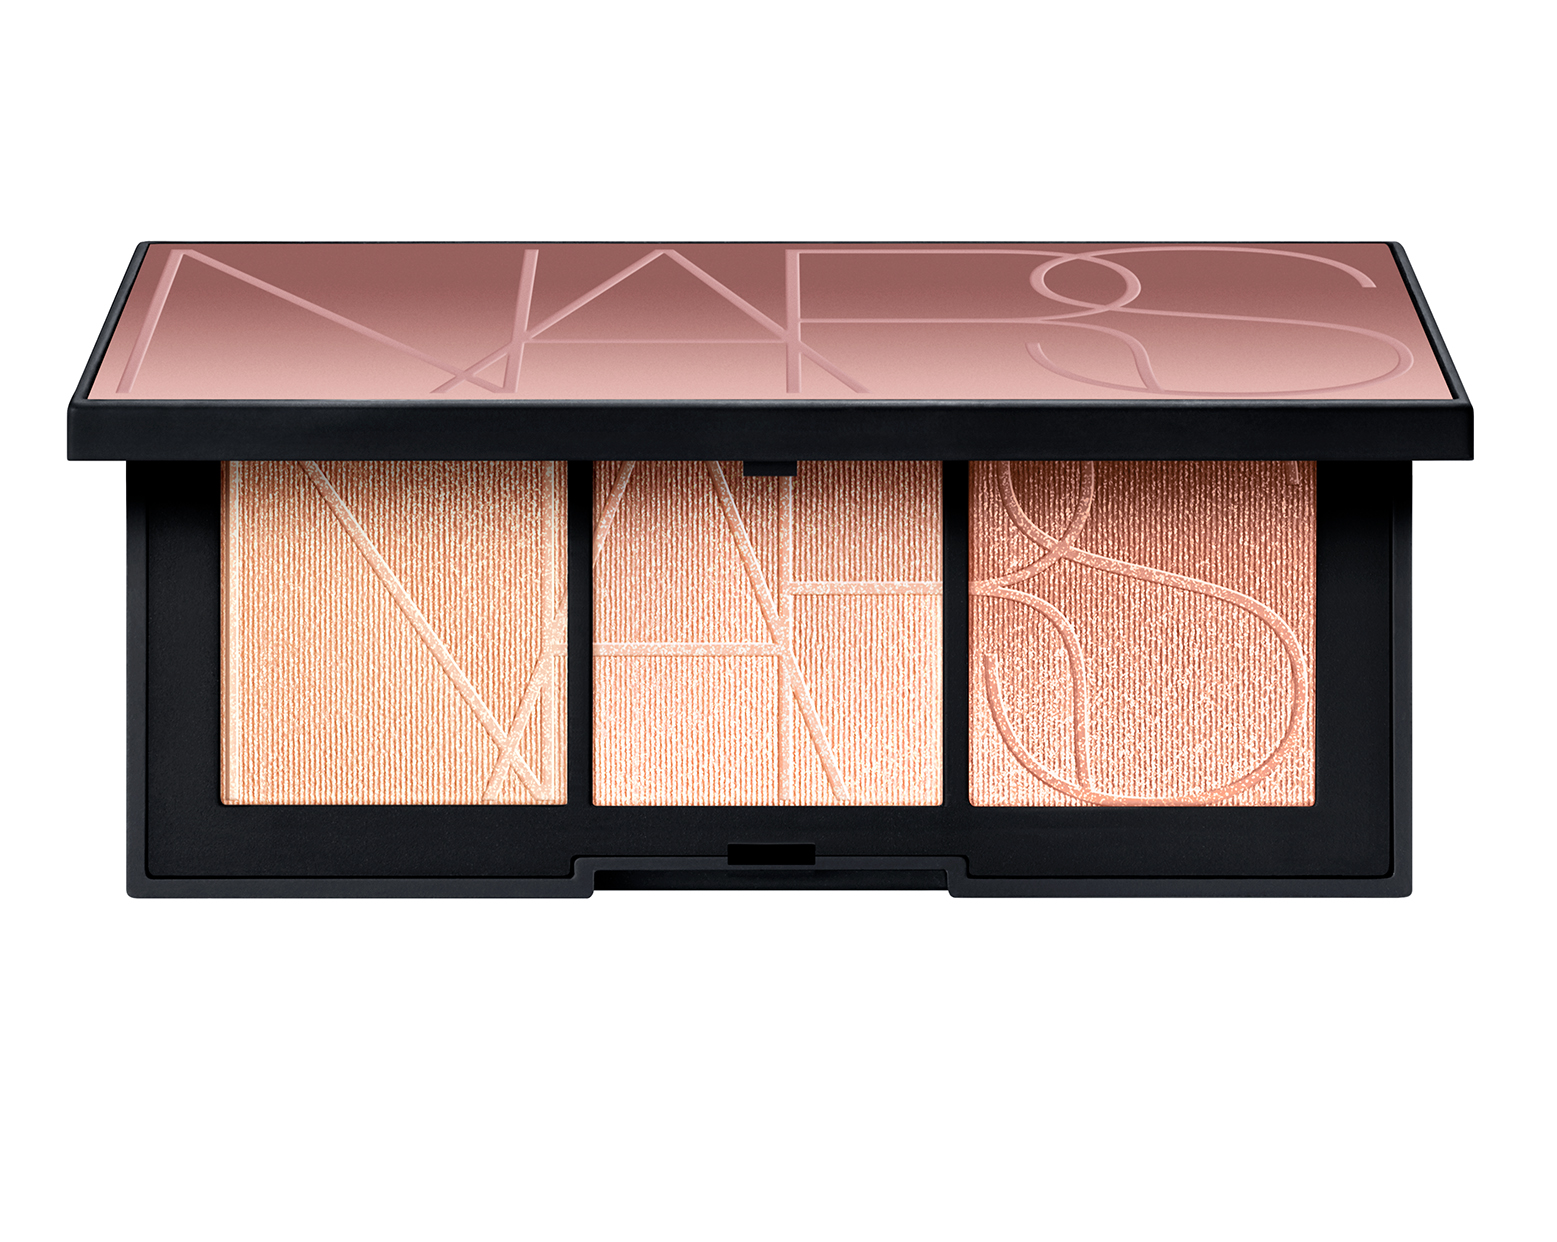 NARS cosmetics makeup & skincare products